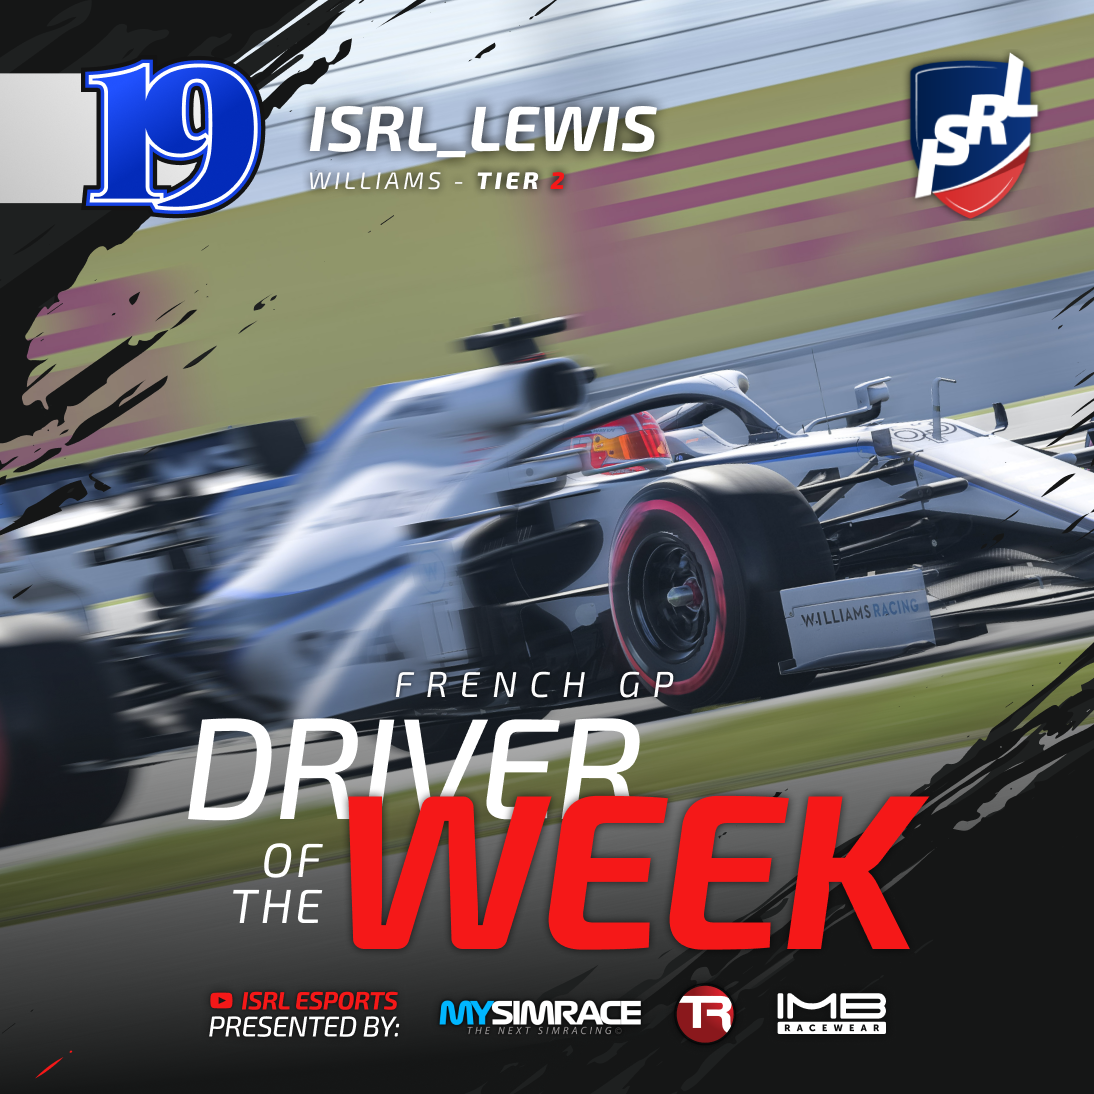 On lap 5, he was 16th with a broken wing. On lap 15, he was 12th. But by lap 27, ISRL_Lewis was in the podium spots and fighting for the lead. 😱  This remarkable comeback drive from the Williams Tier 2 driver earns him Driver of the Week!  #f1esports #f1game #simracing #formula1 https://t.co/ofWHY8X2hX